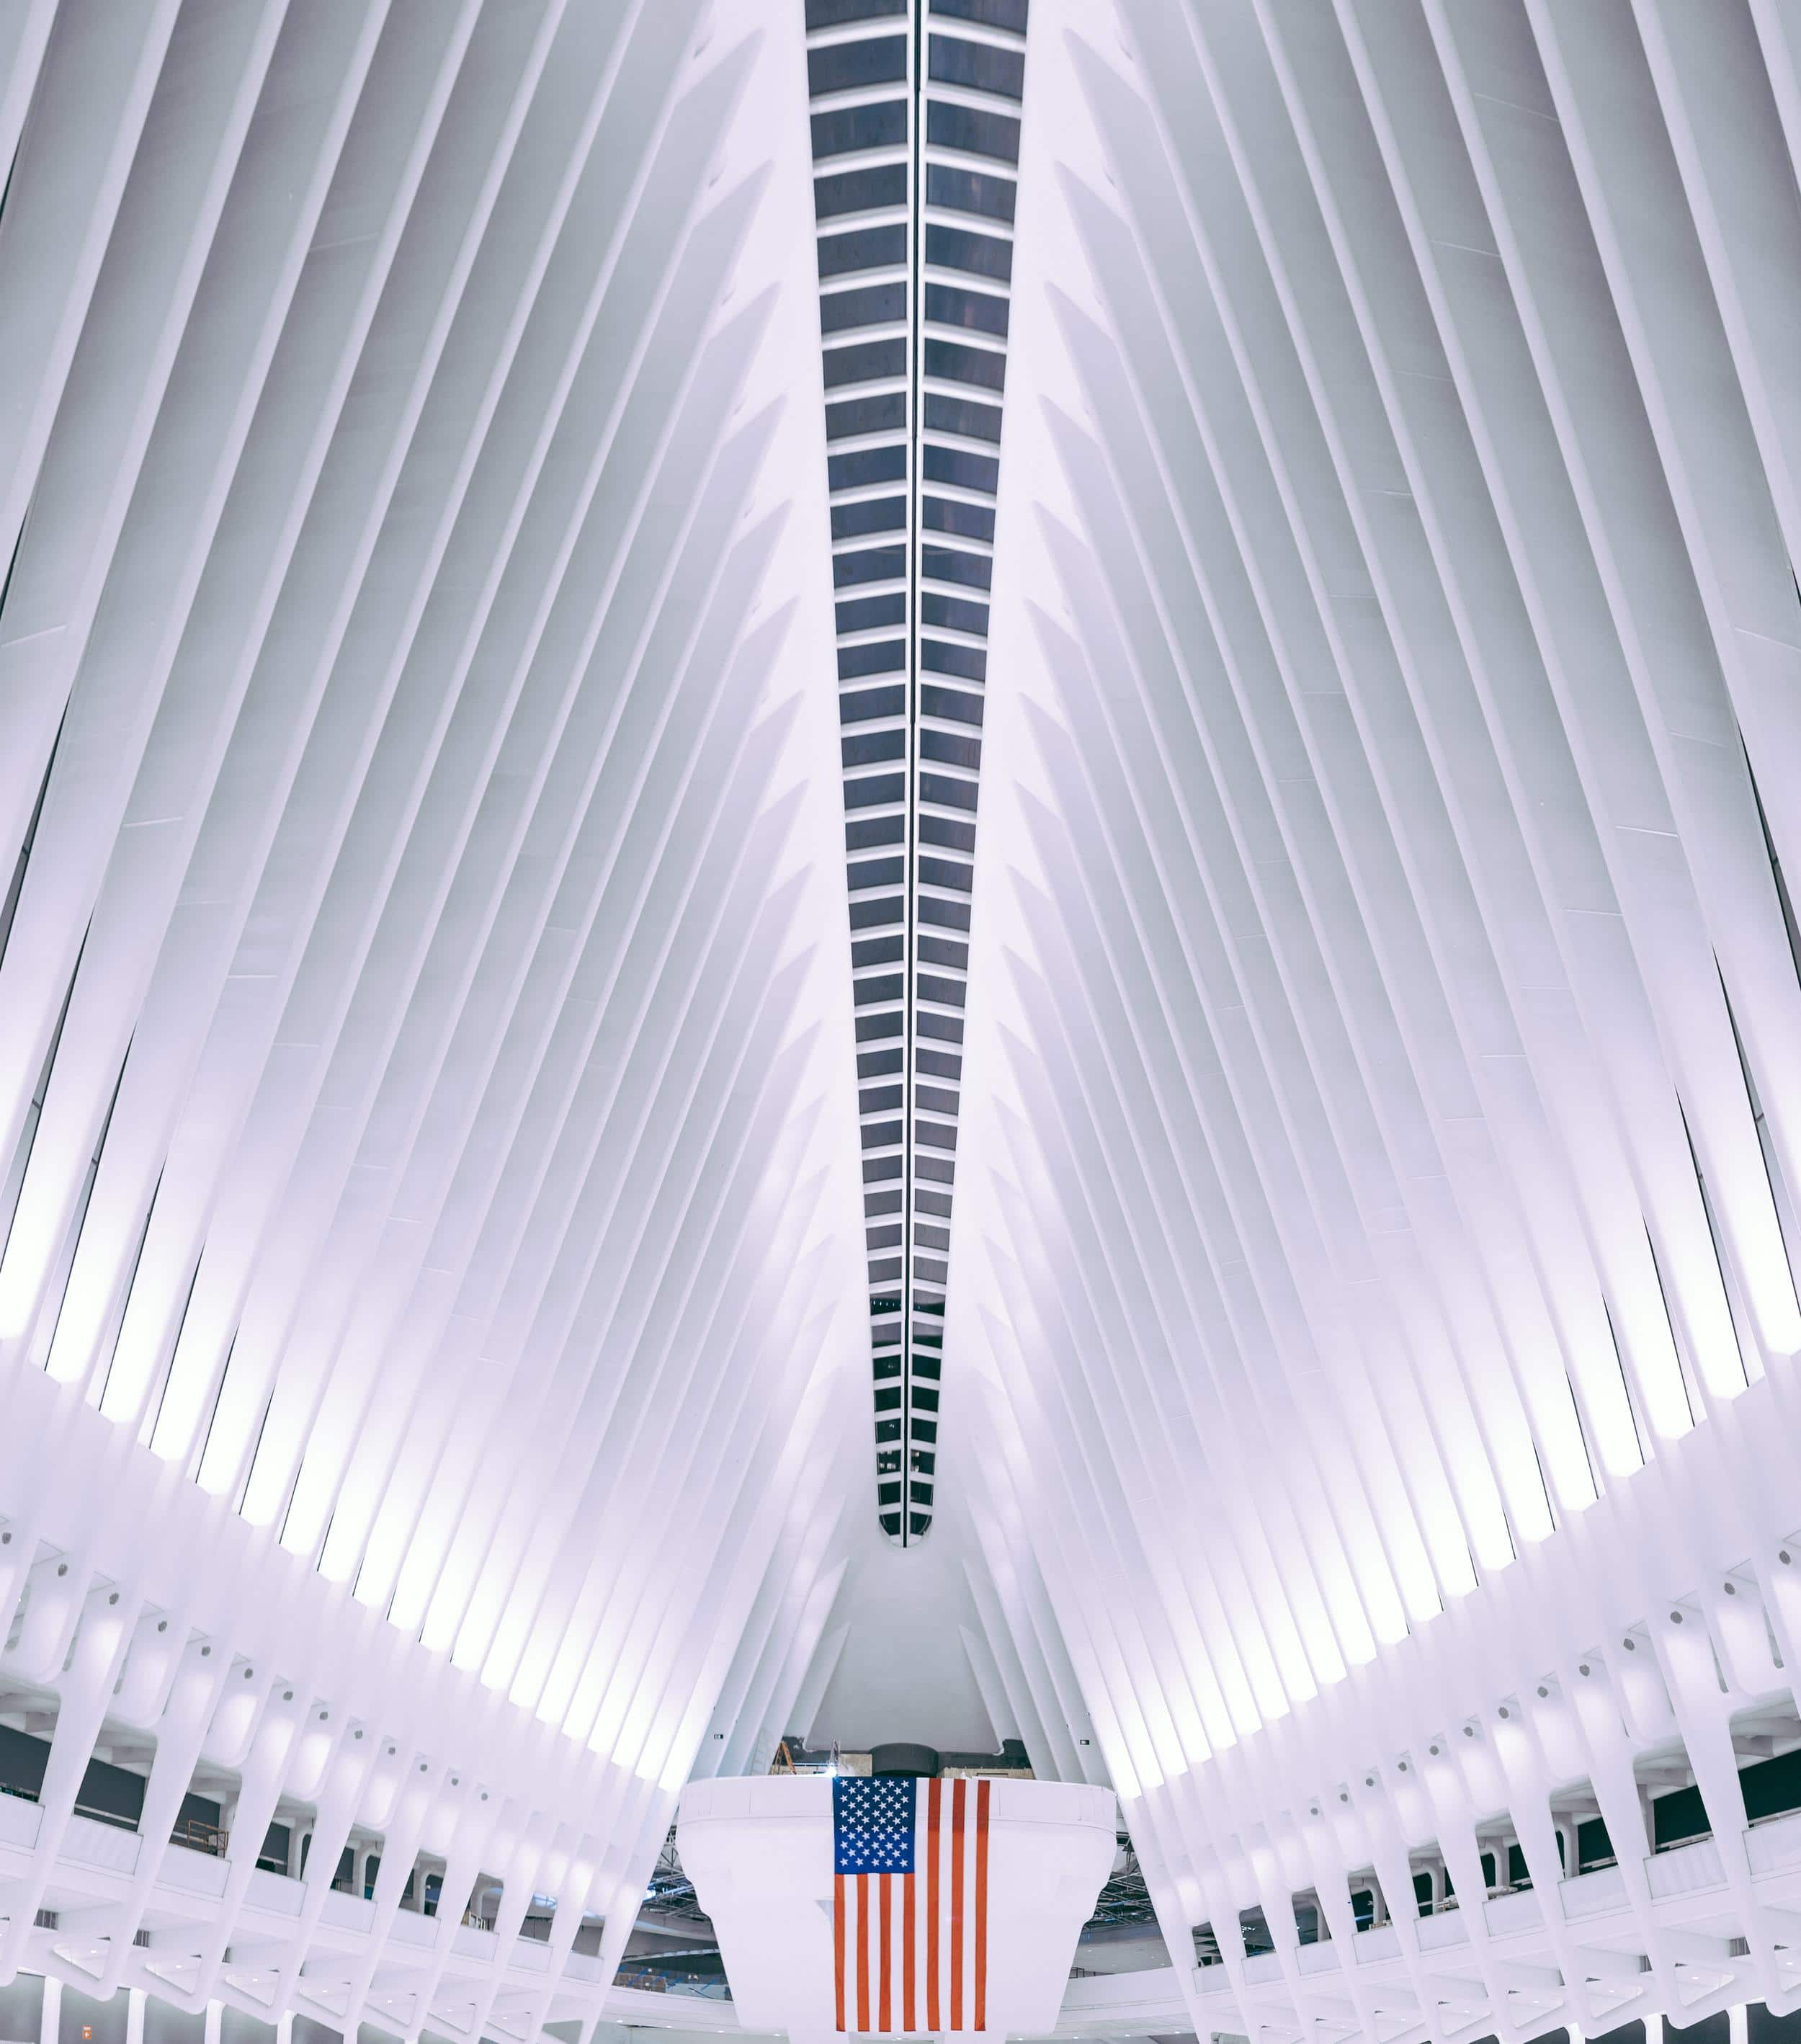 One Of The Newest Additions To Nyc Calatrava Designed Path Station At World Trade Center Is Pure Beauty Dubbed Oculus Its Unique Design Was